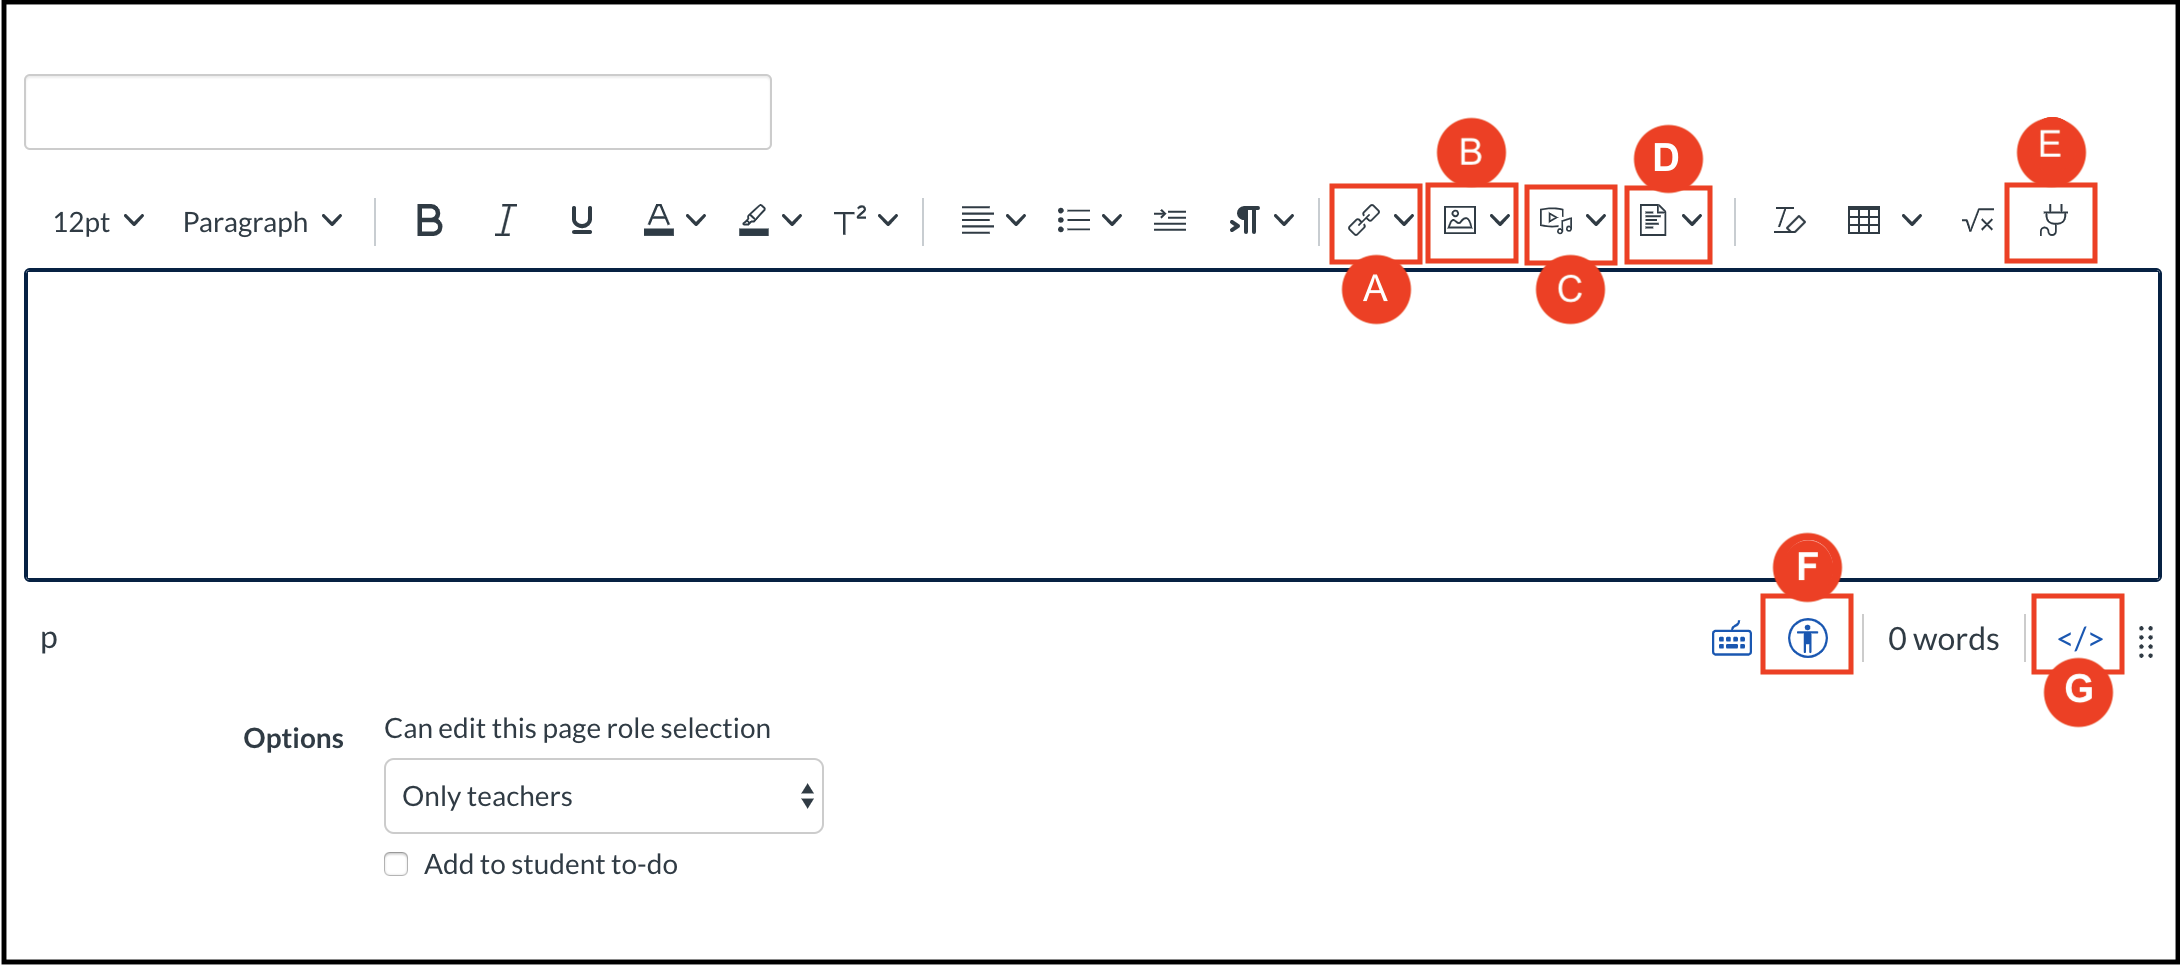 New RCE repositioned features labelled